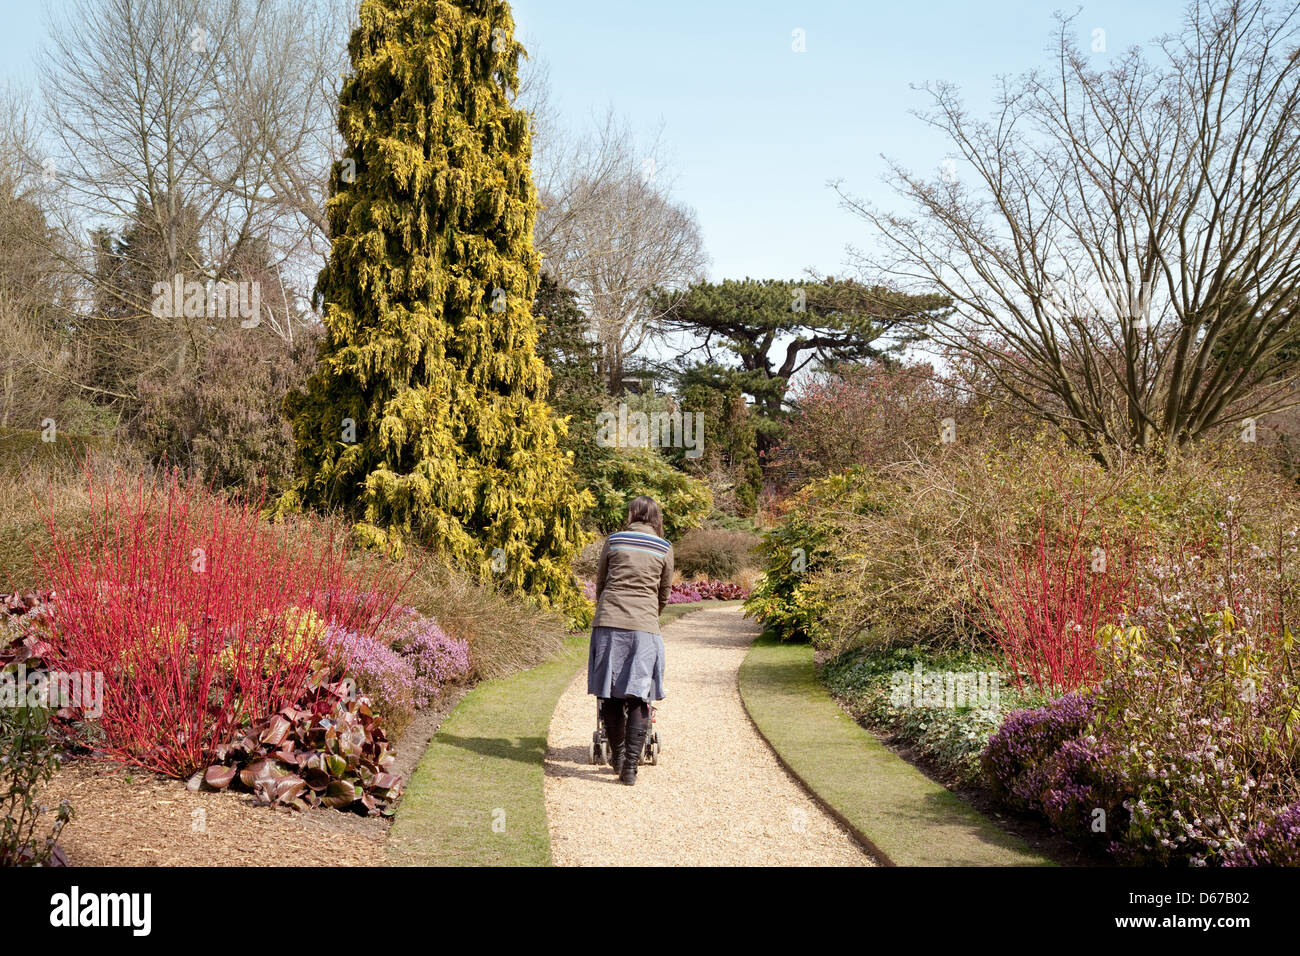 Pleasing A Woman Walking In The Winter Garden Cambridge Botanic Garden  With Luxury A Woman Walking In The Winter Garden Cambridge Botanic Garden Cambridge  Uk With Charming Rumours Covent Garden Also Mirror Gardening In Addition Garden Centre Kendal And White Garden Lanterns As Well As Plastic Bottle Garden Additionally Garden Maintenance From Alamycom With   Luxury A Woman Walking In The Winter Garden Cambridge Botanic Garden  With Charming A Woman Walking In The Winter Garden Cambridge Botanic Garden Cambridge  Uk And Pleasing Rumours Covent Garden Also Mirror Gardening In Addition Garden Centre Kendal From Alamycom